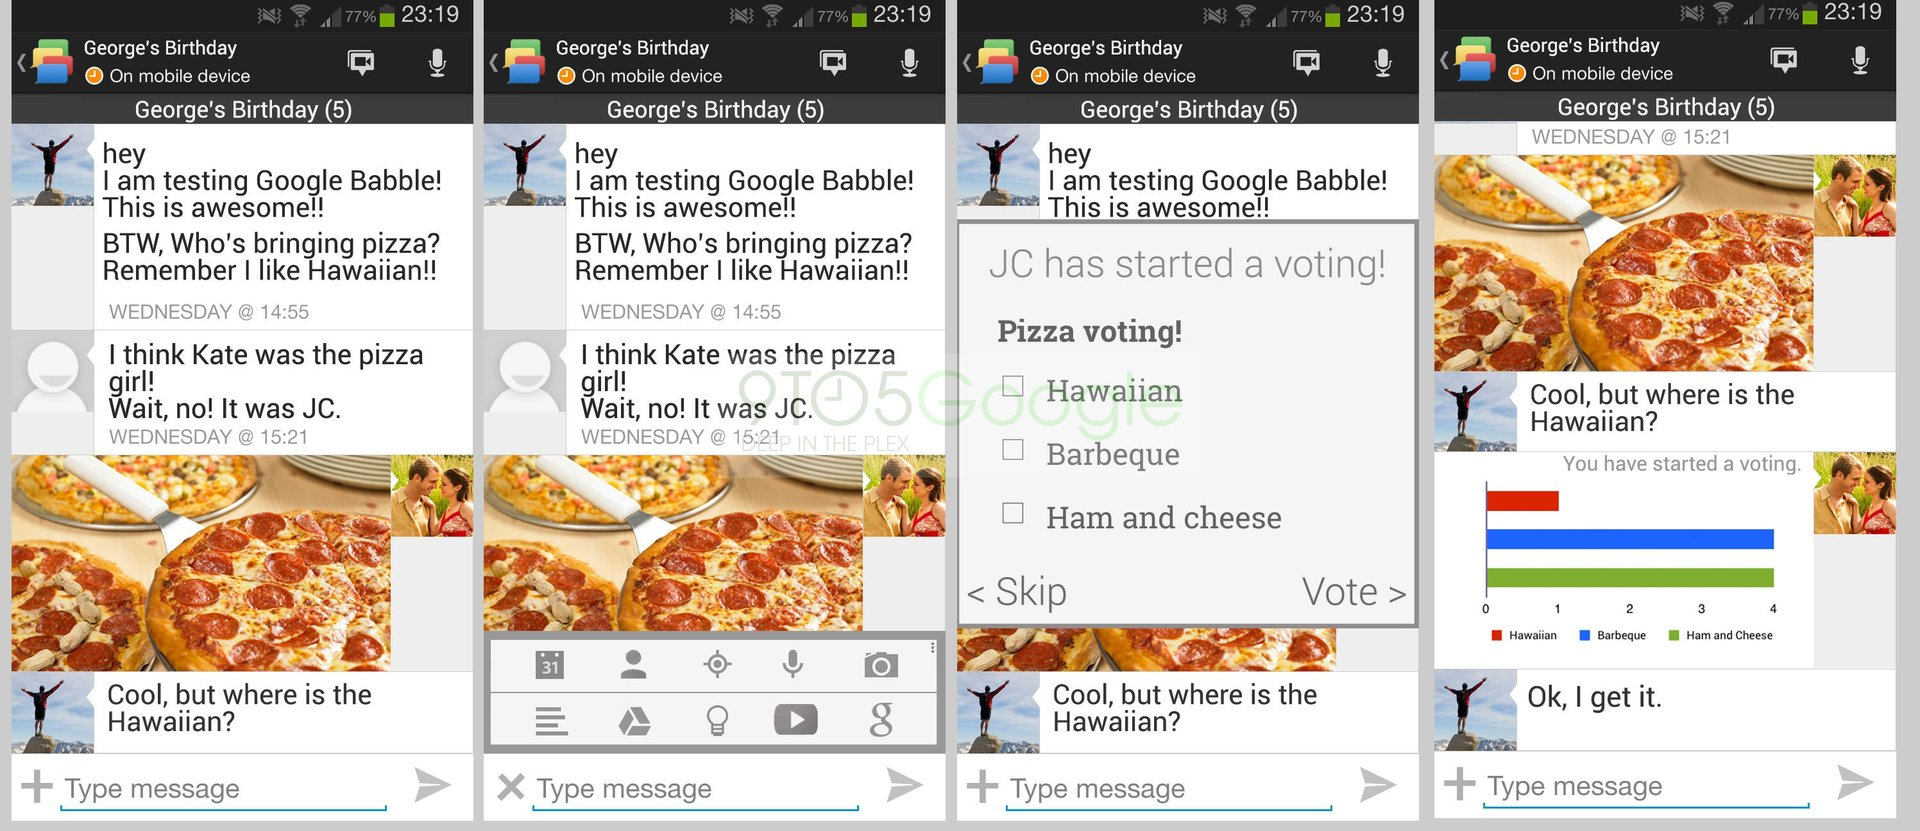 Google Babble Screenshot/Mockup